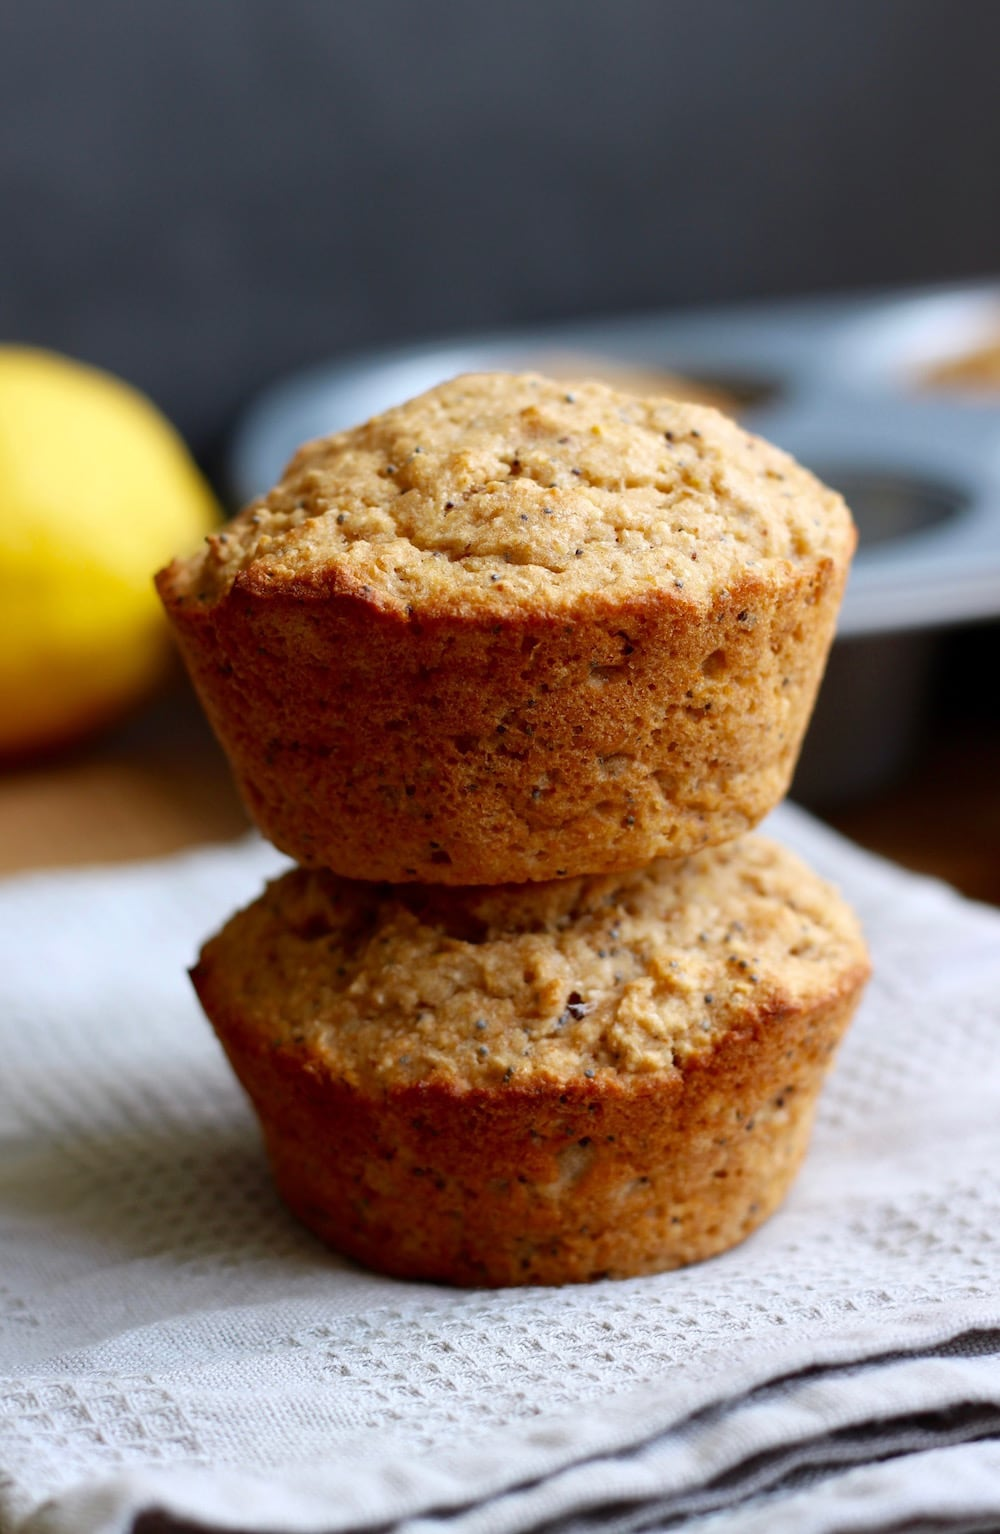 Lemon Poppy seed muffins stacked on each other